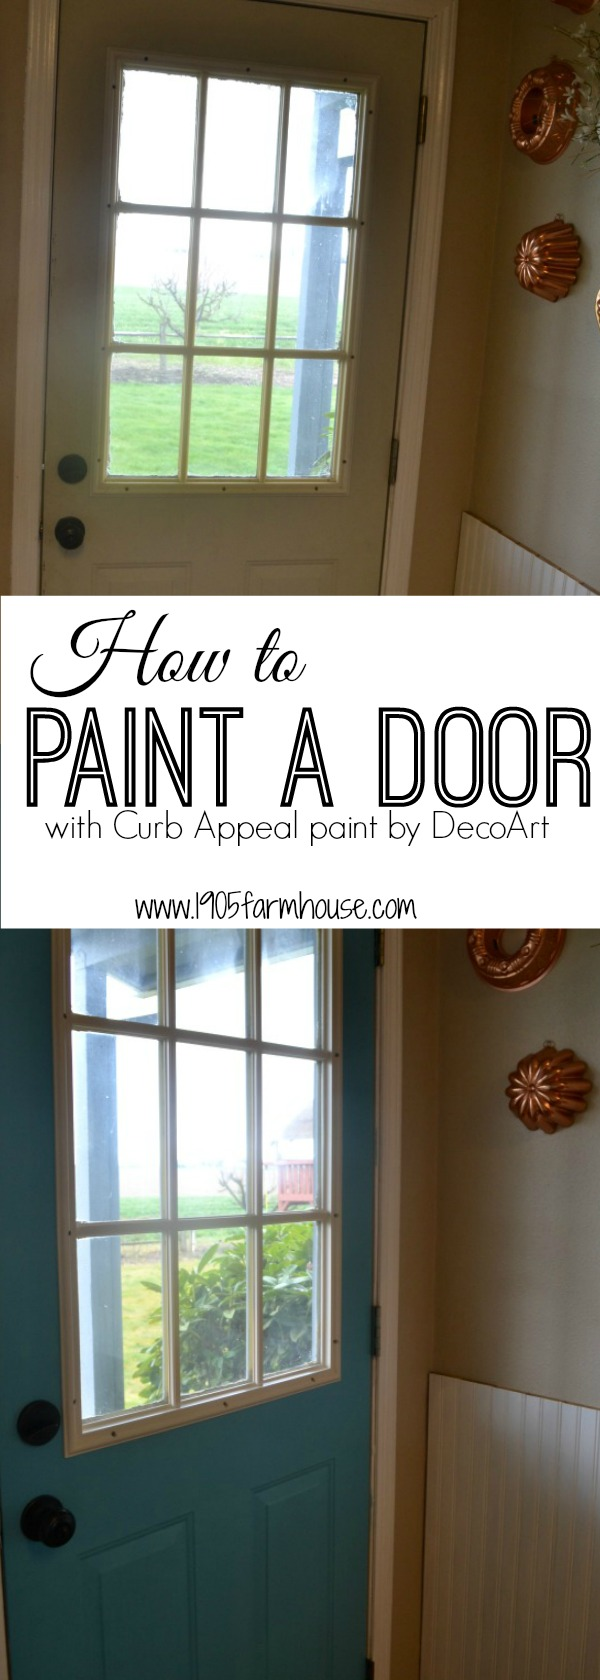 A full tutorial on how to paint a metal interior door to add bold color and update a laundry room #diyproject #paintproject #fixerupper